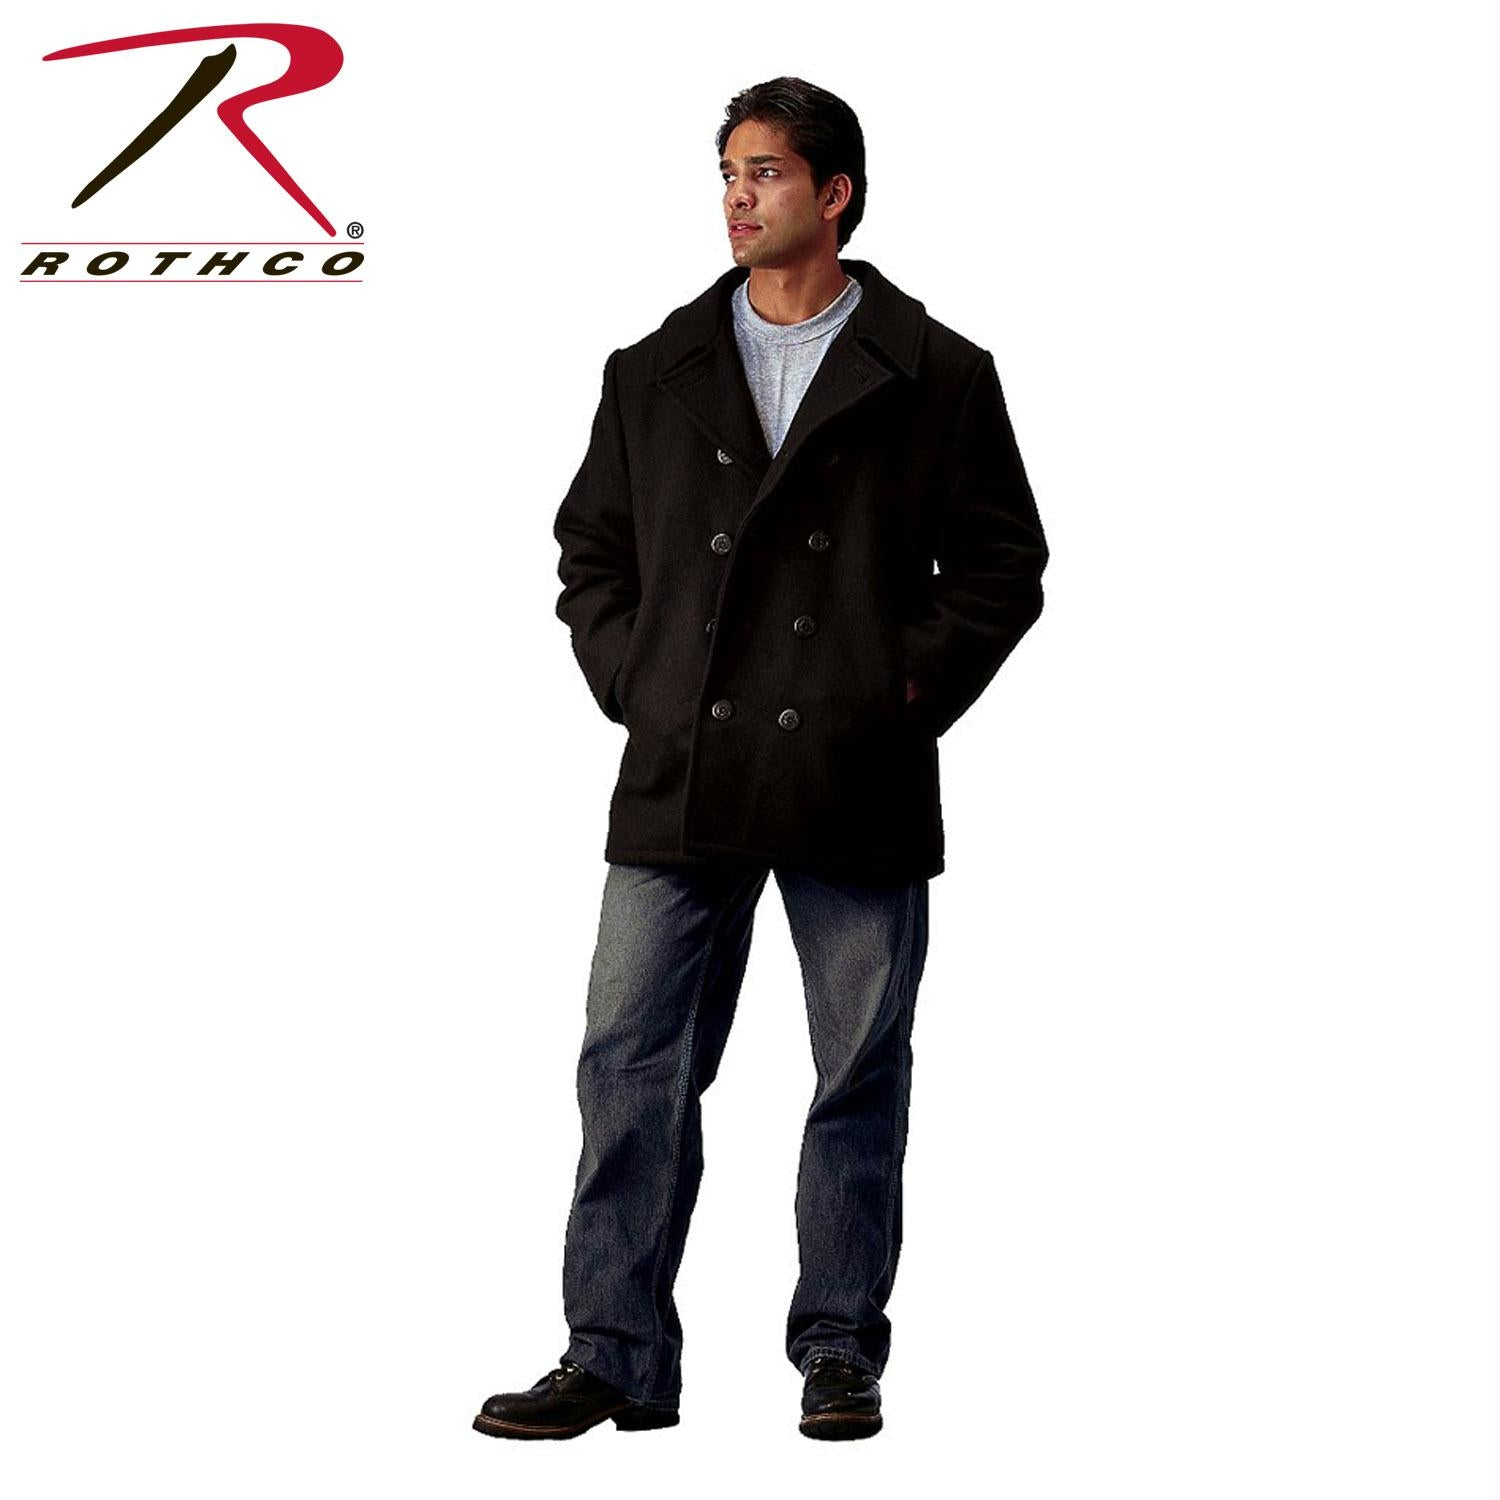 Rothco US Navy Type Pea Coat - Black / 2XL